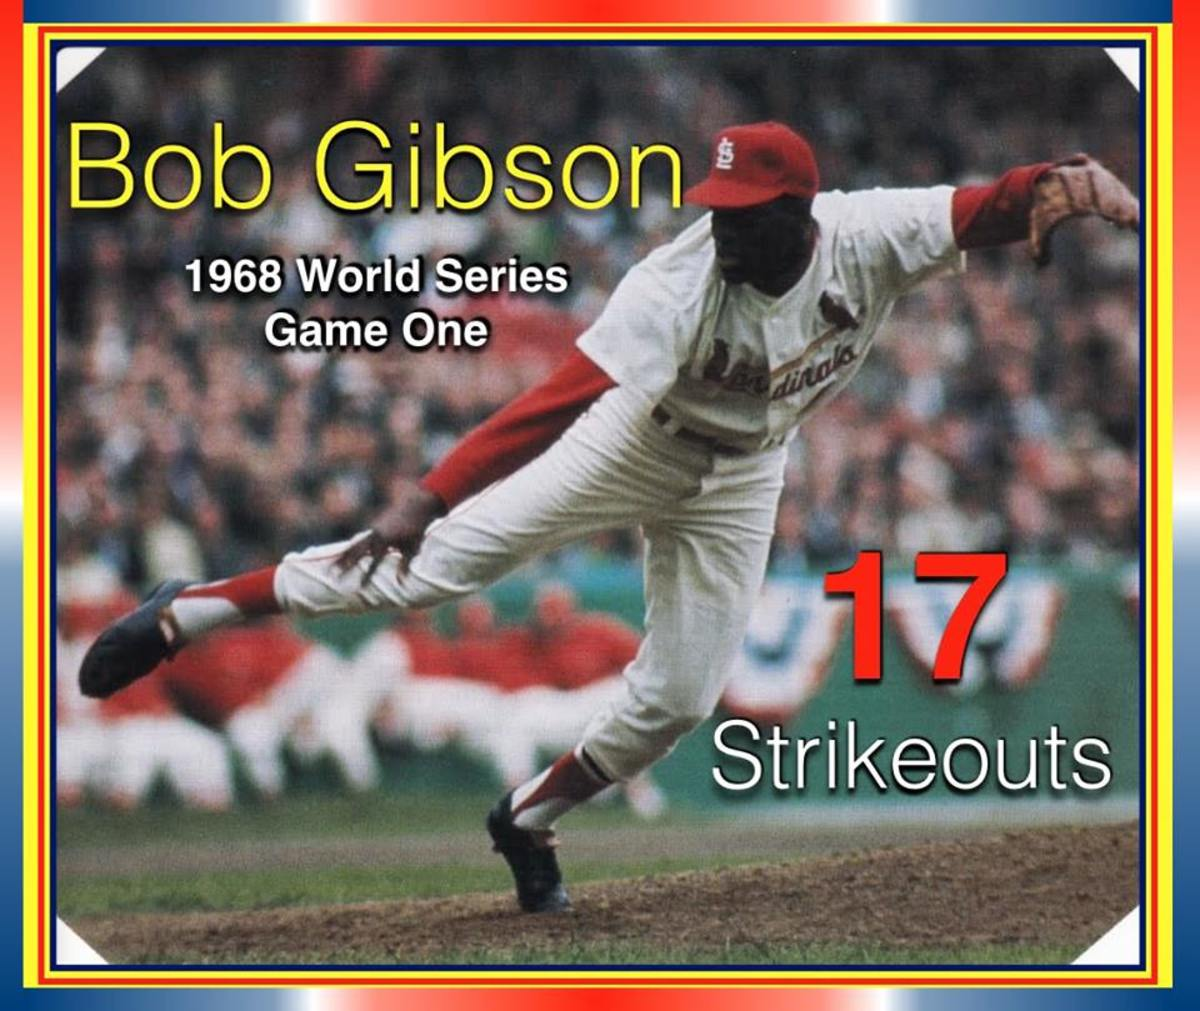 Bob Gibson's World Series record 17 strikeouts is still the standard of excellence in a big game